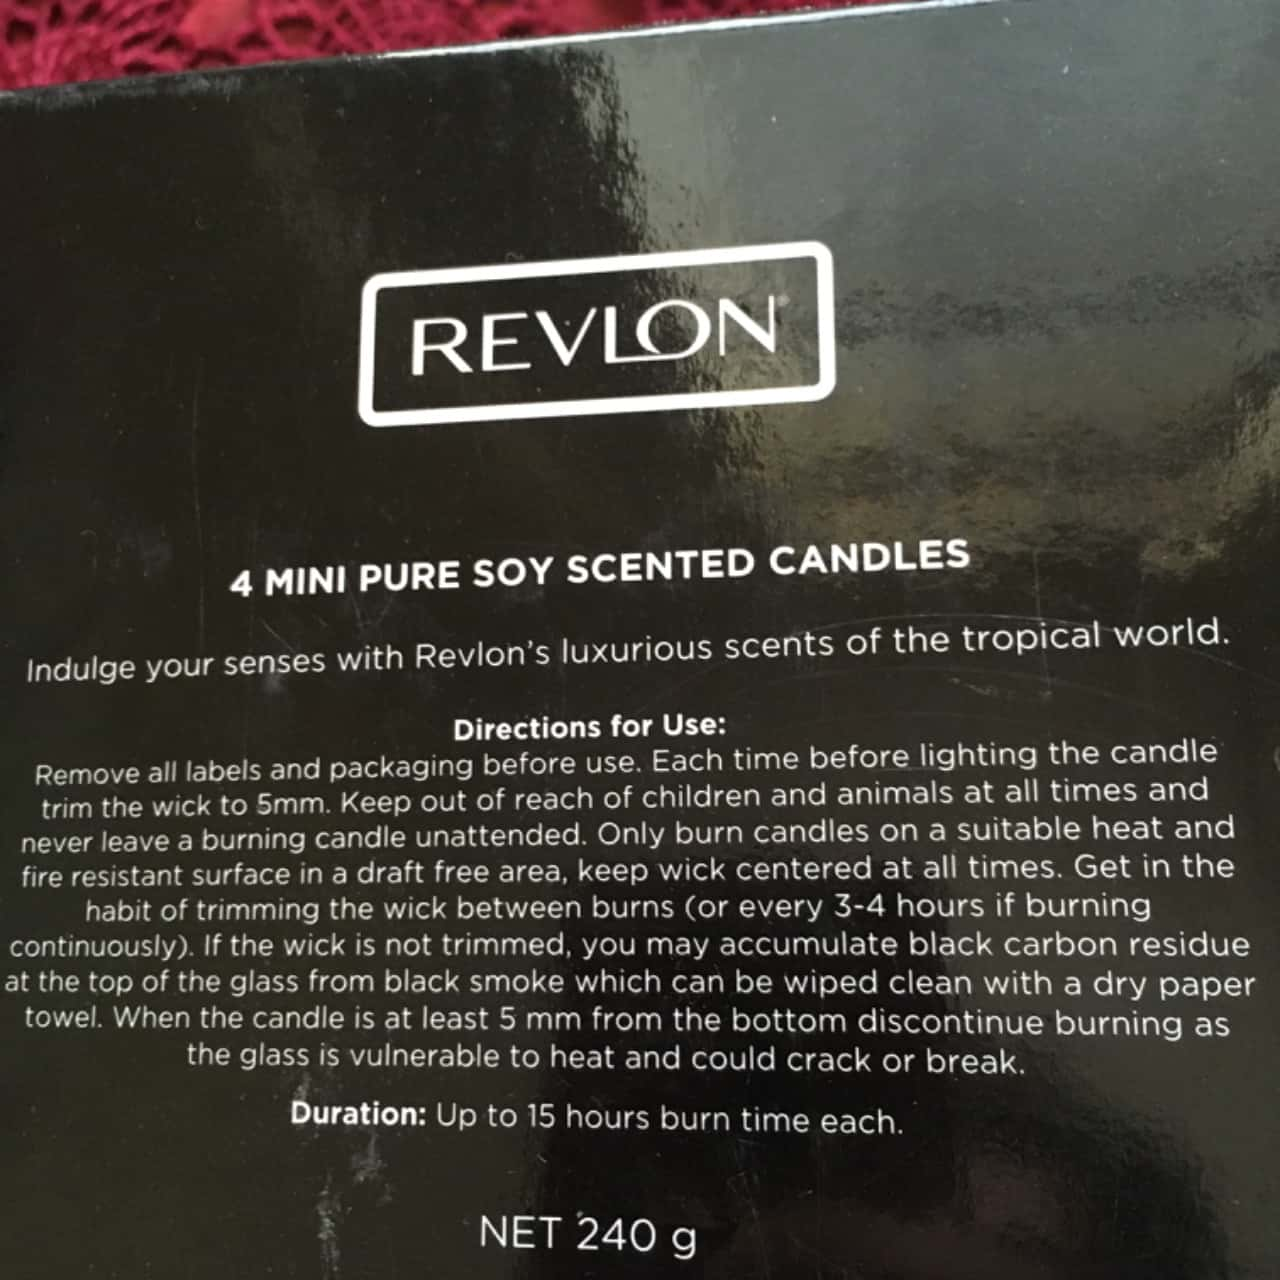 Revlon 4 Mini Pure Soy Scented Candles, Brand New **Happy Mother's Day**